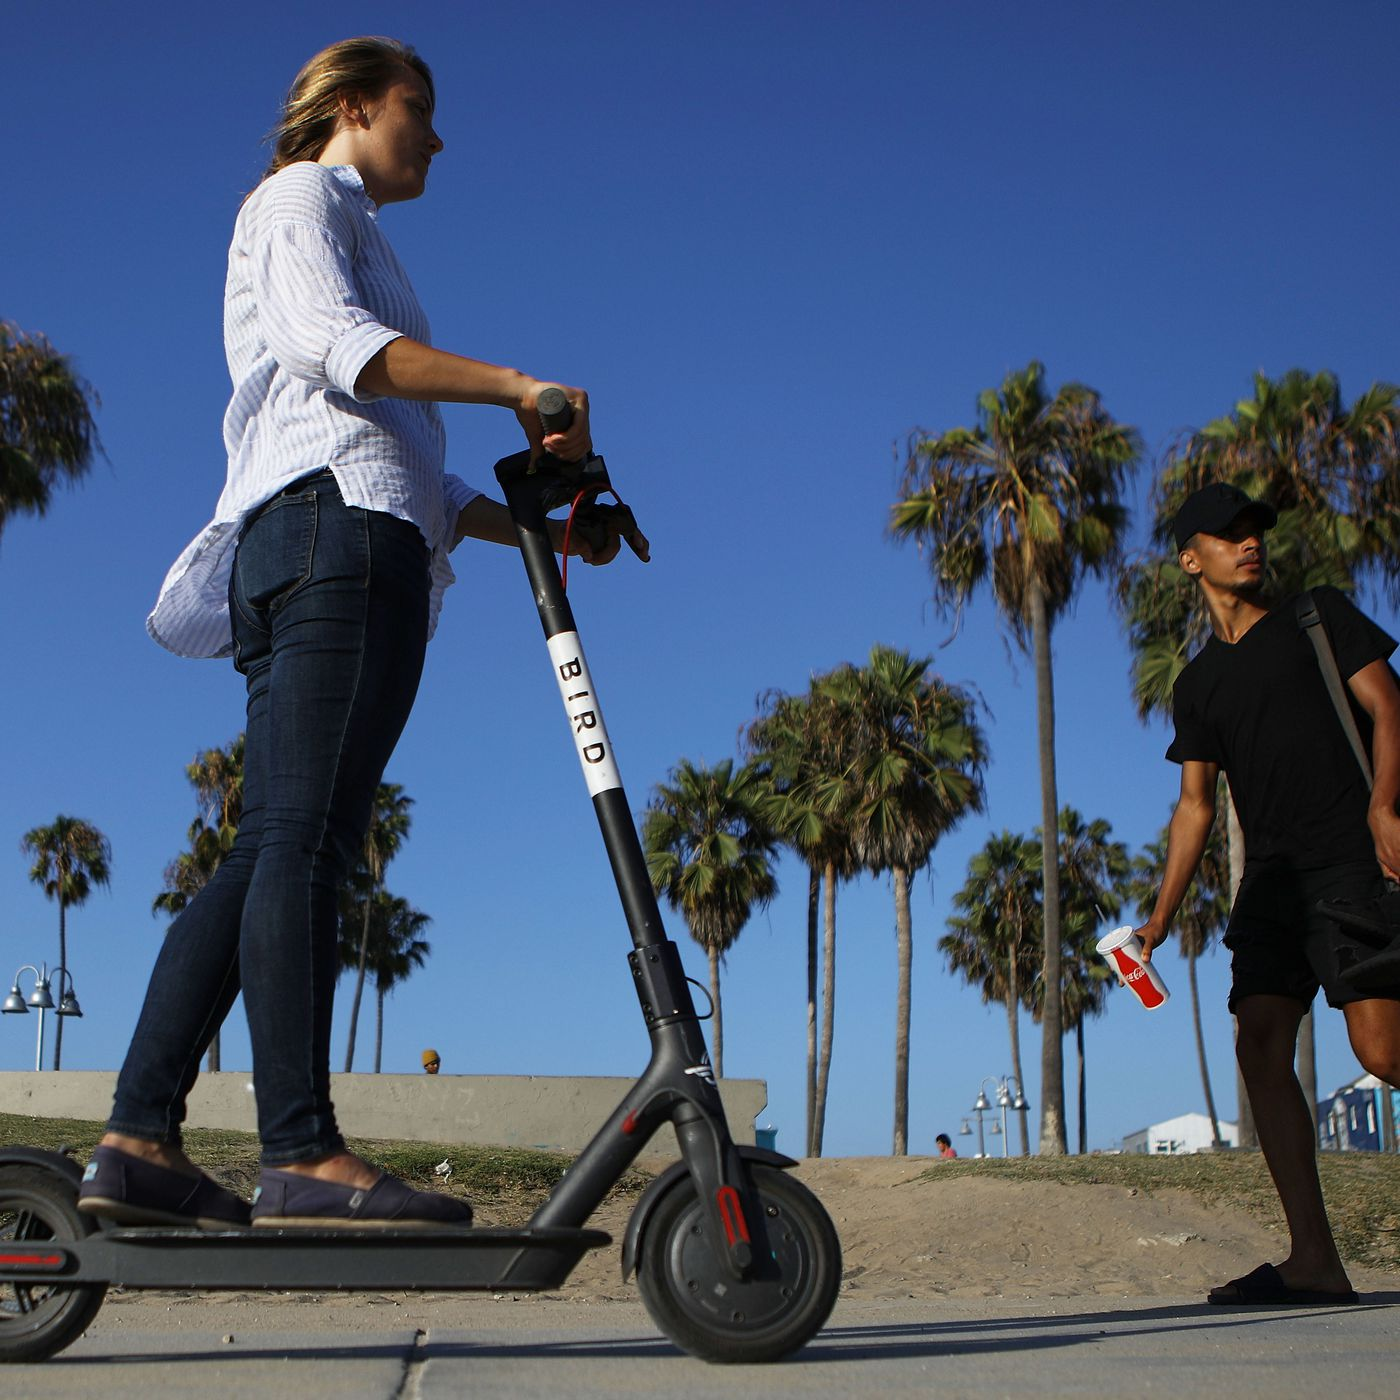 Nyc Draws Closer To Legalizing E Scooters E Bikes Thanks To State Bill Curbed Ny